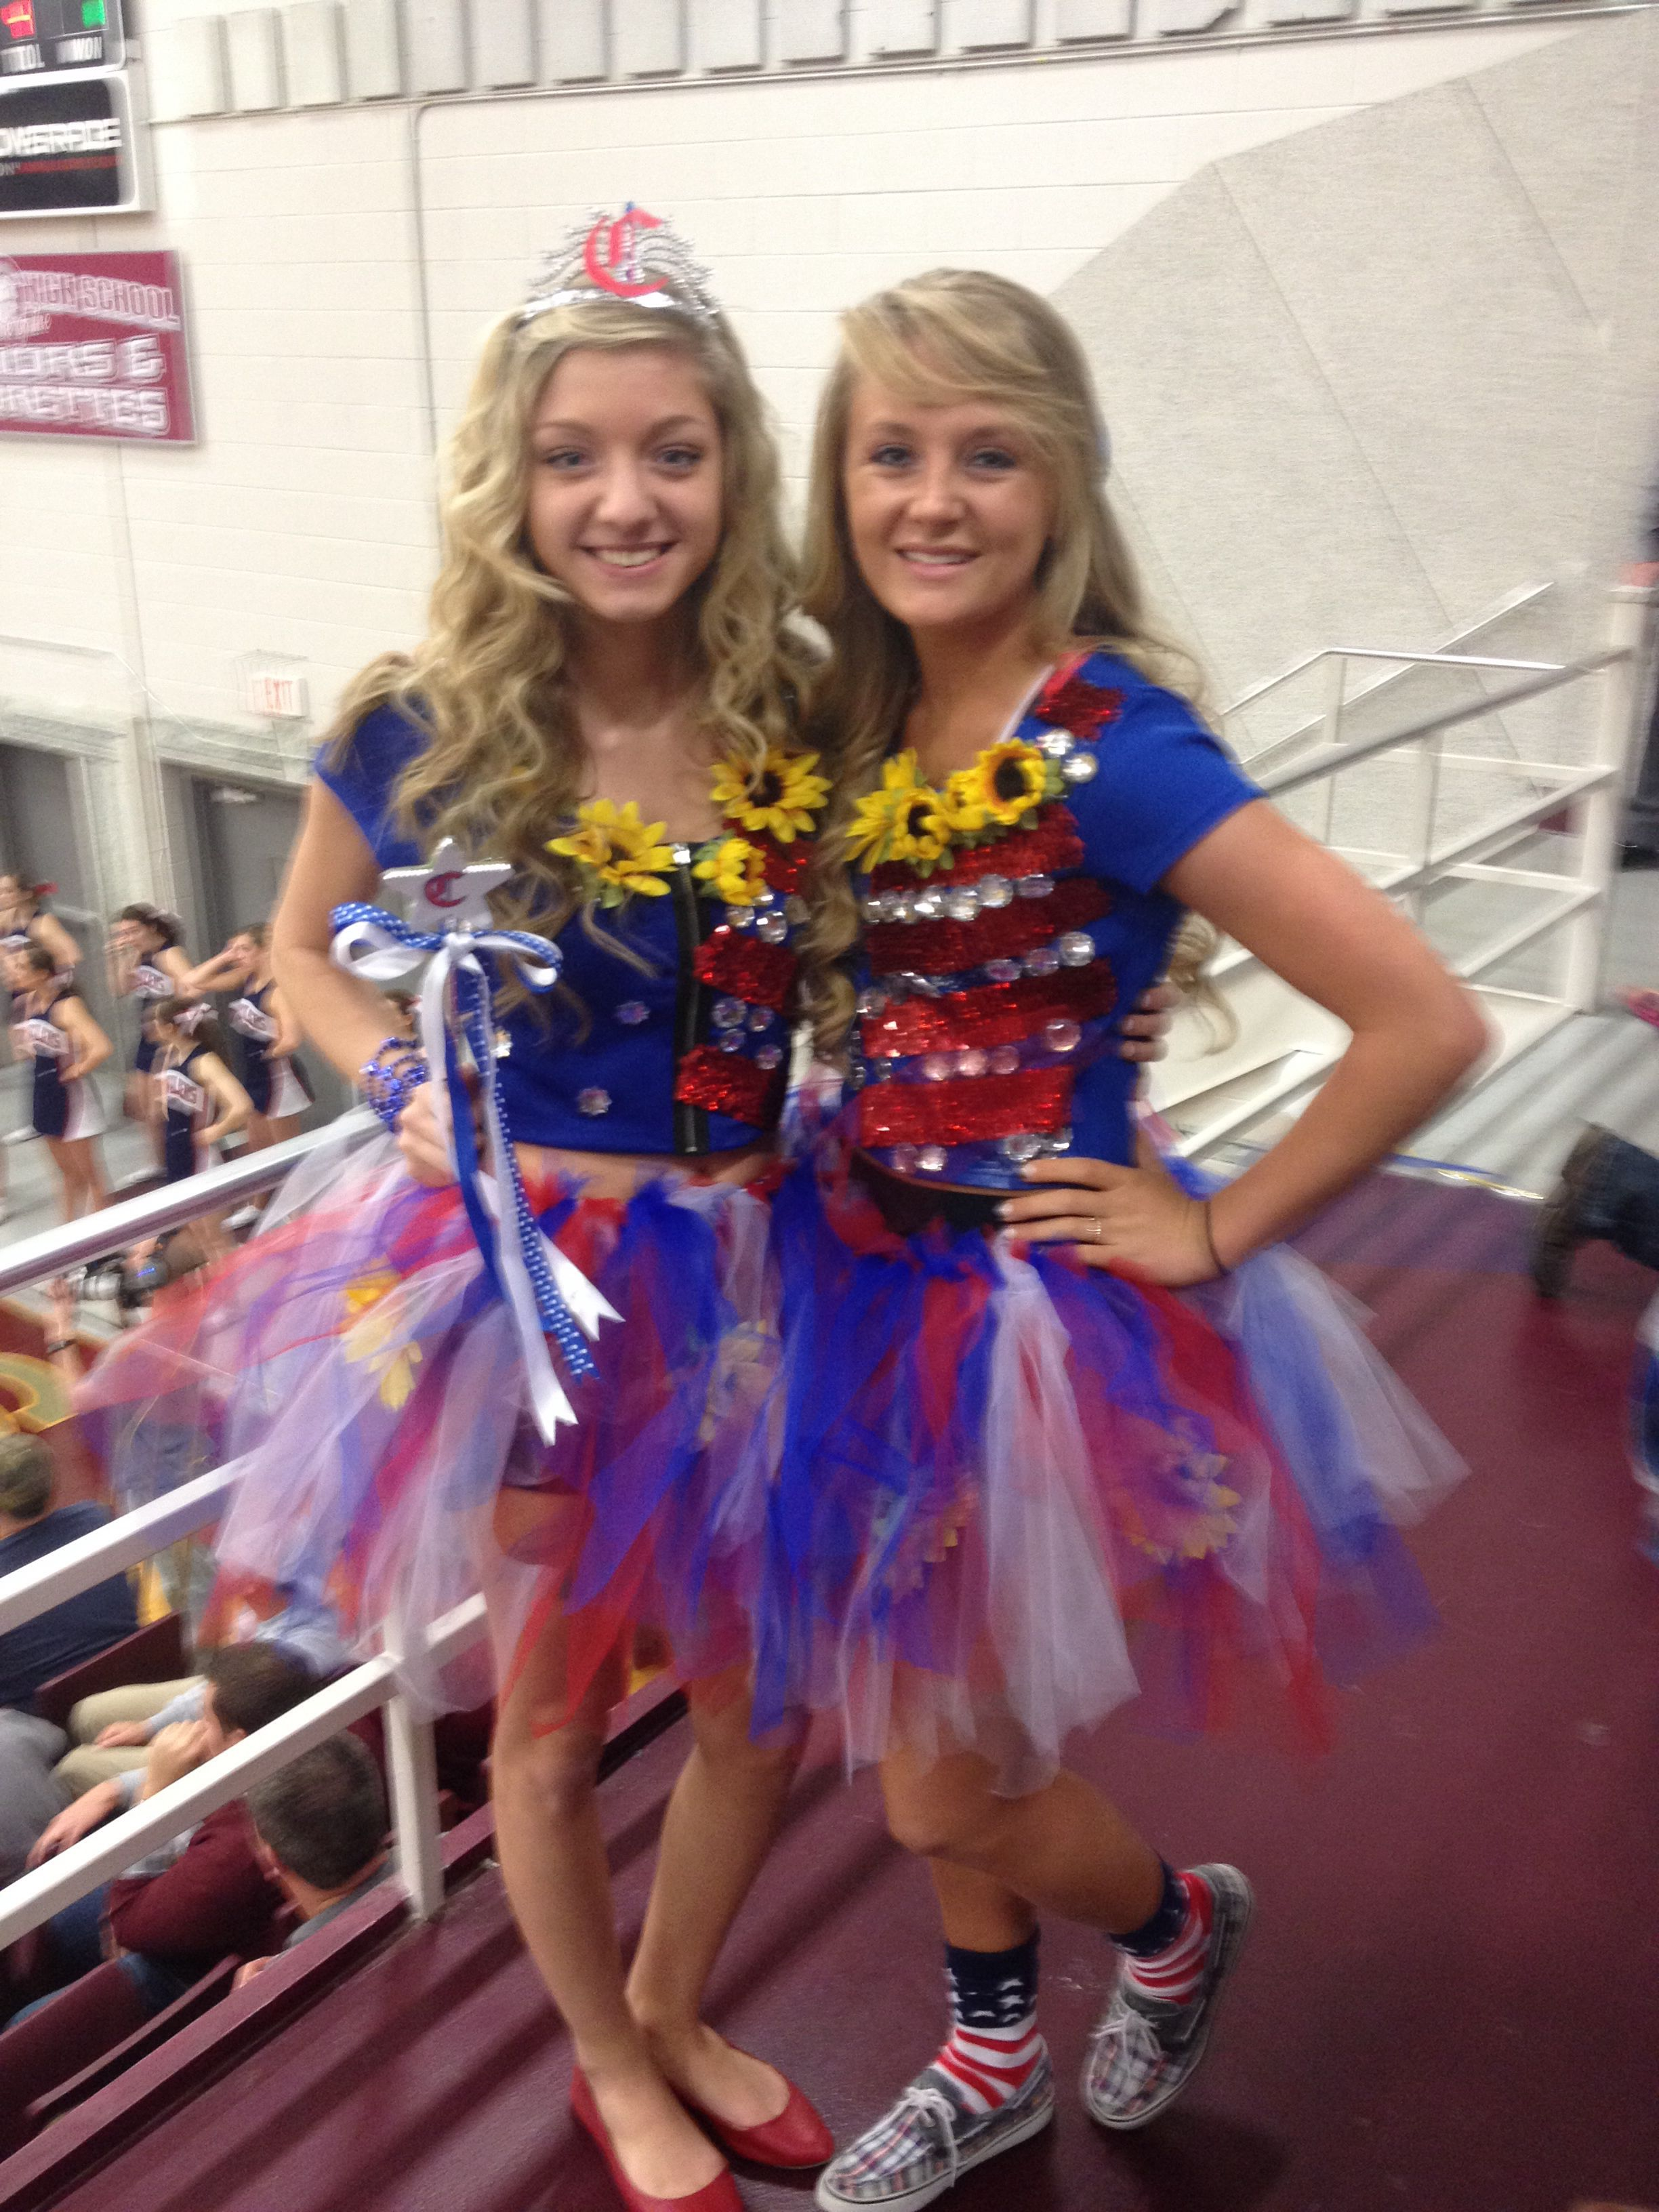 School spirit outfits  School spirit outfit, Dress outfits, Outfits